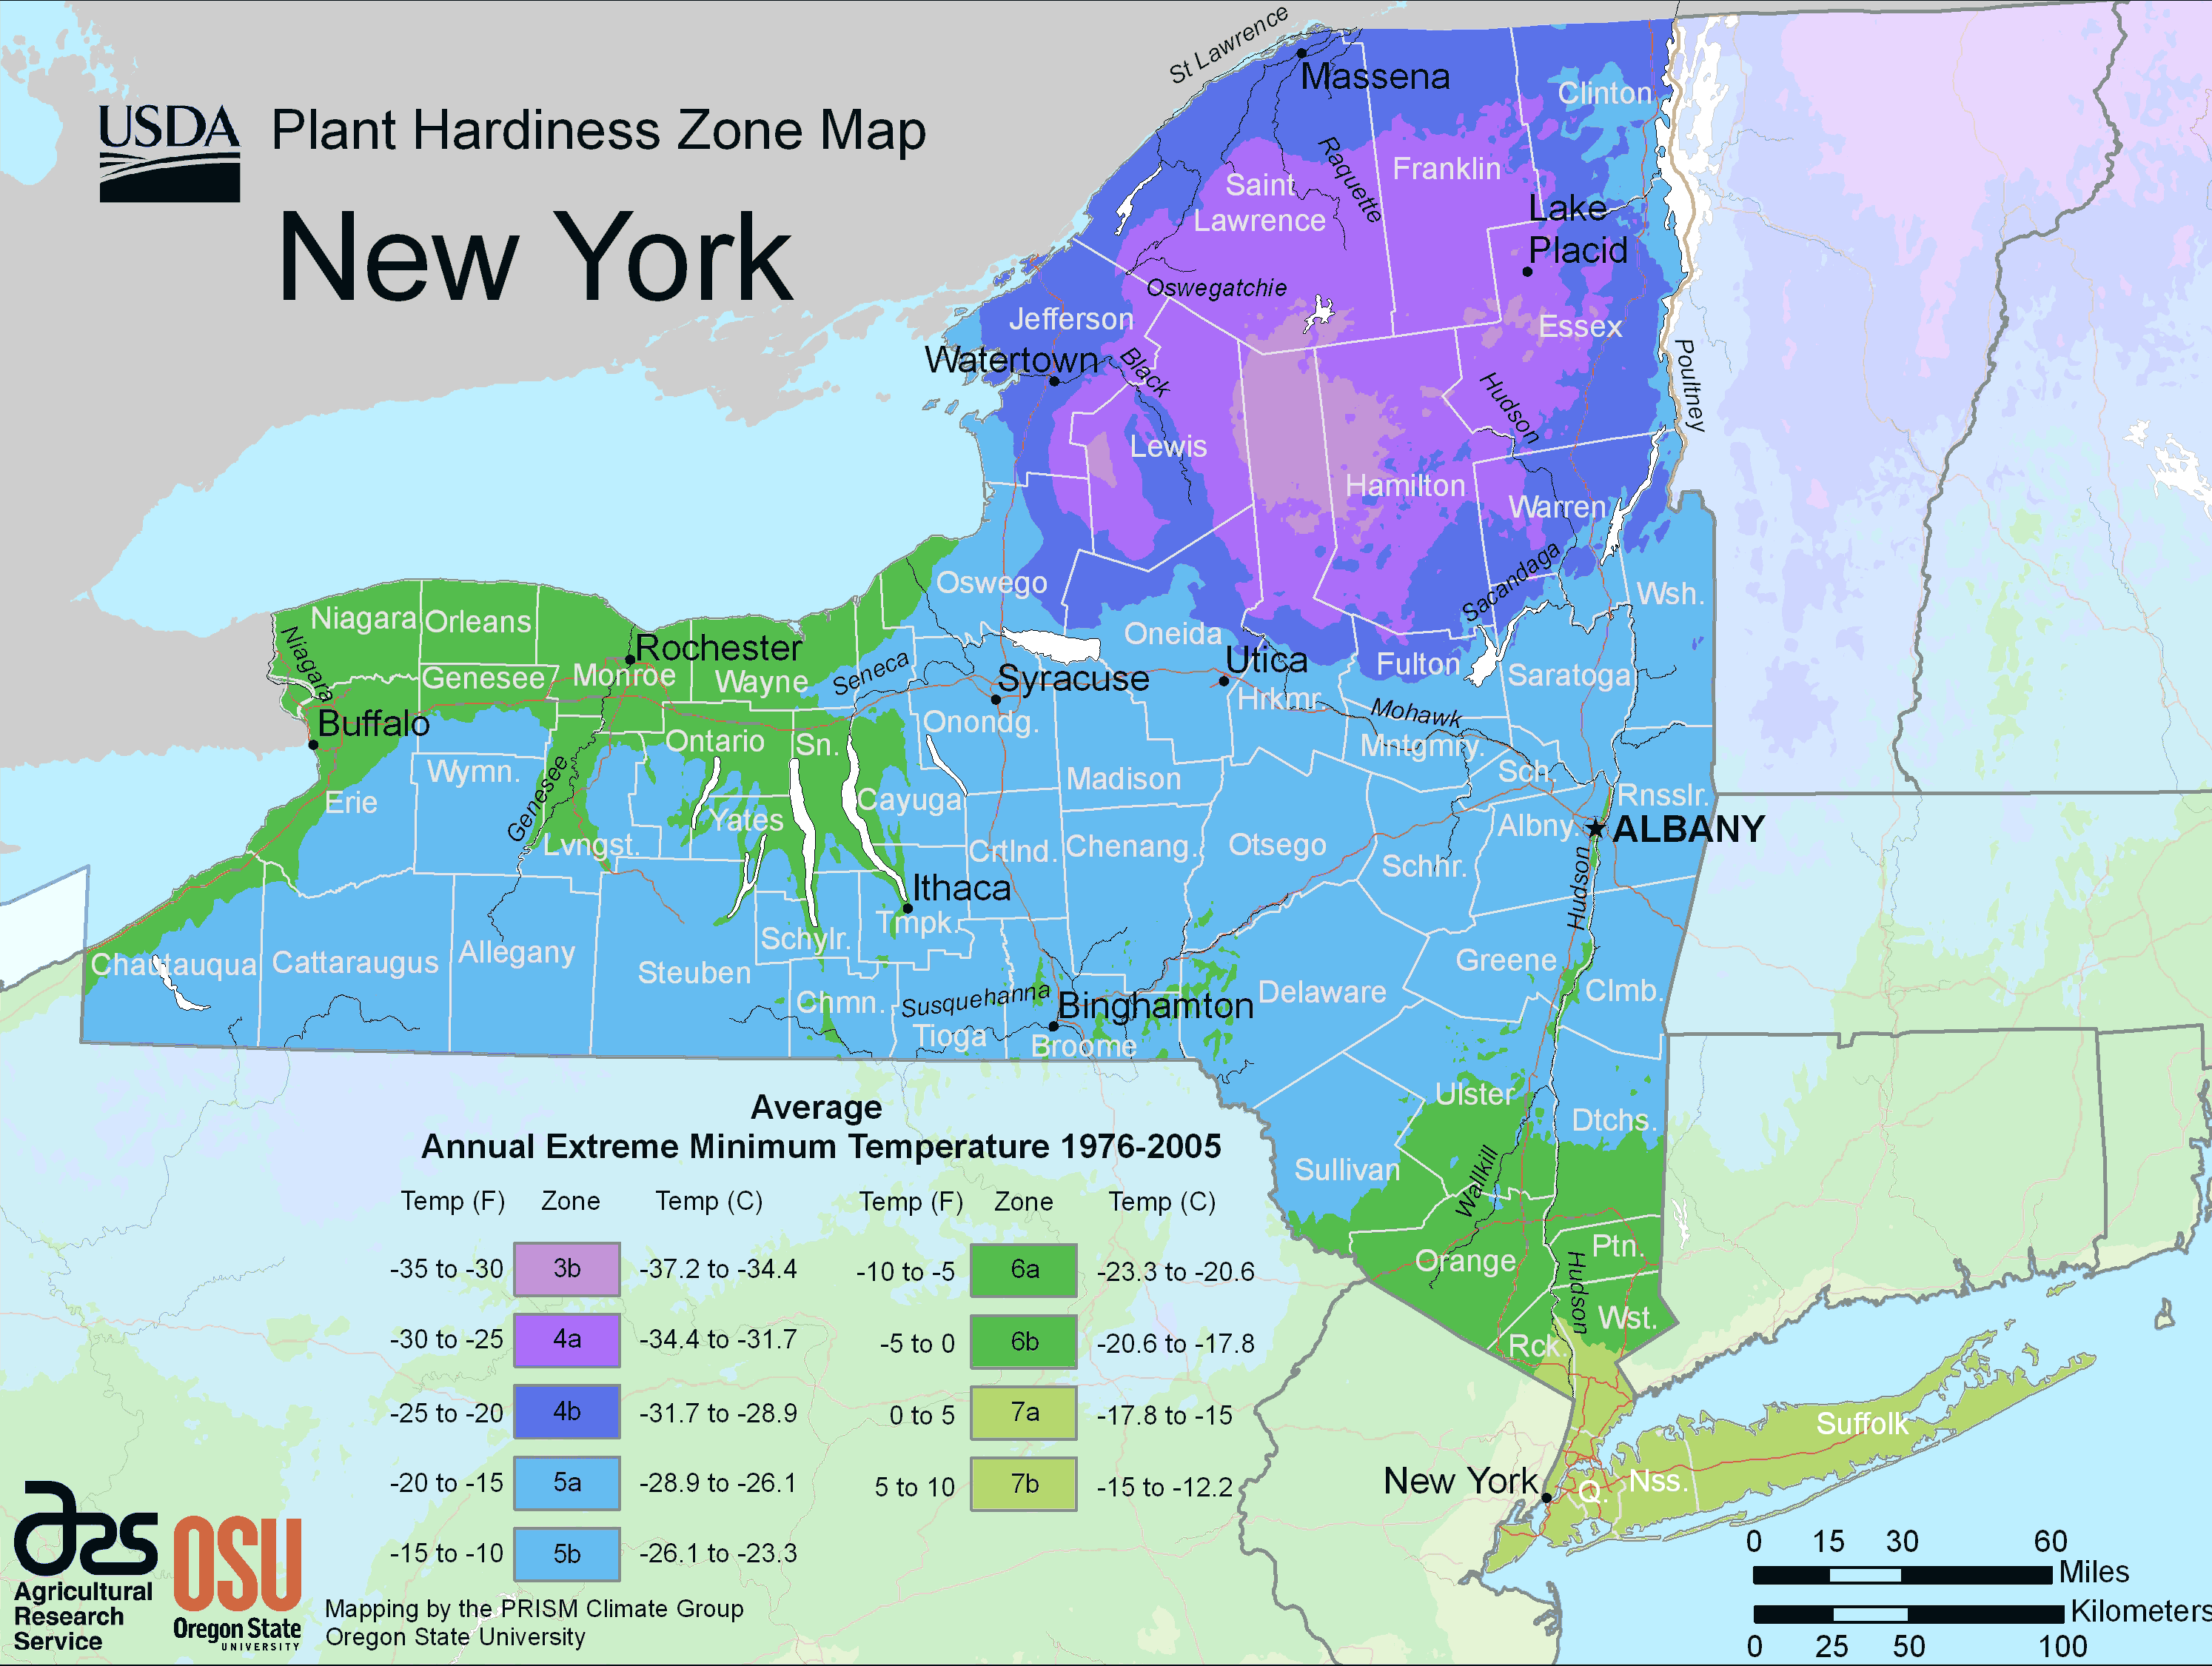 New York Plant Hardiness Zone Map